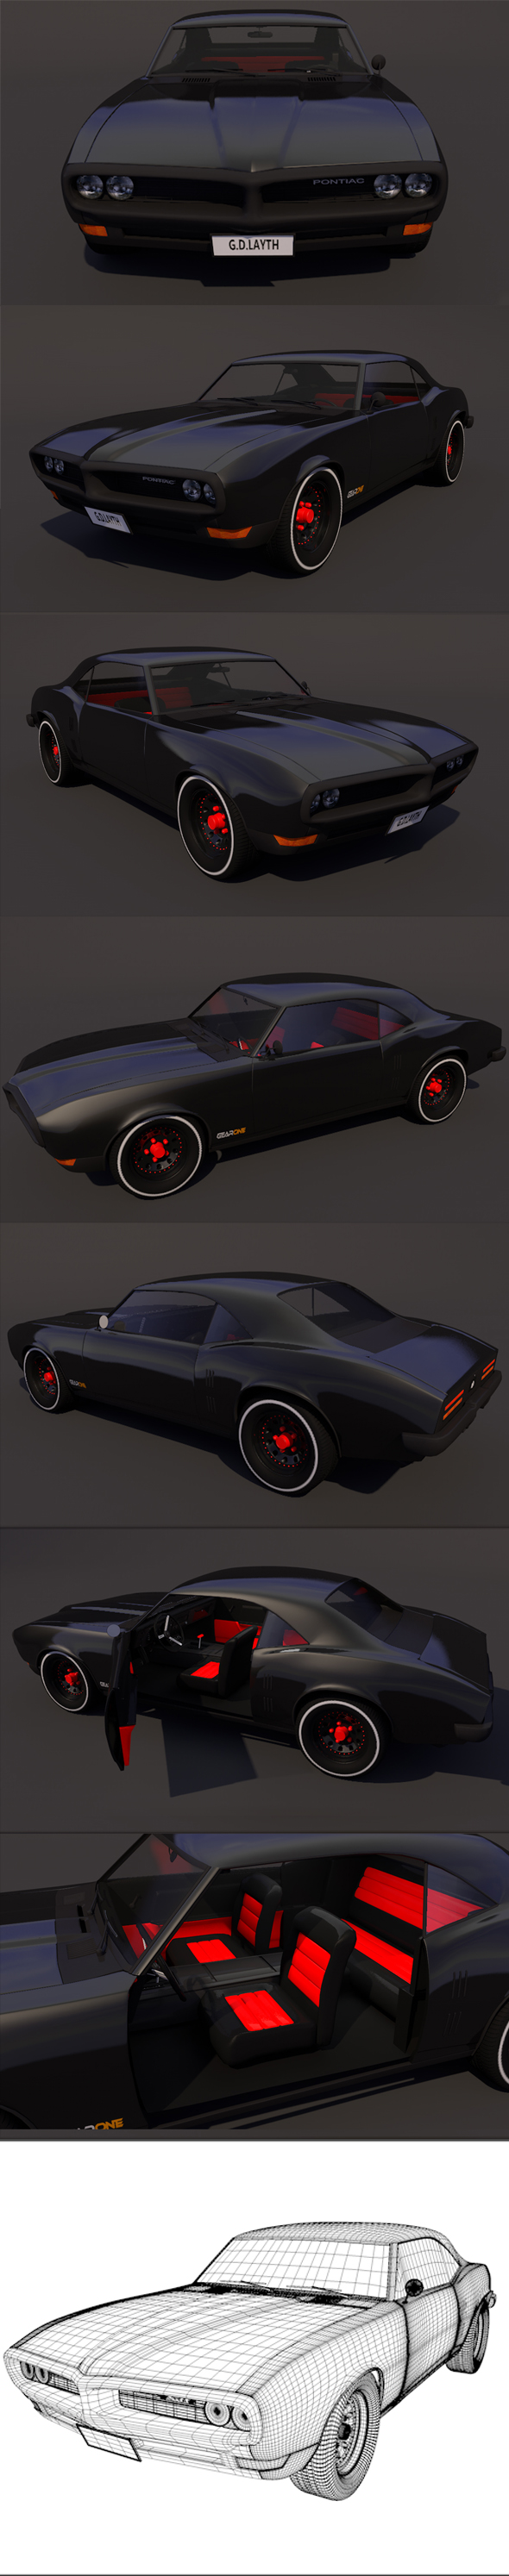 pontiac firebird v2 Full Textures 1080 - 3DOcean Item for Sale